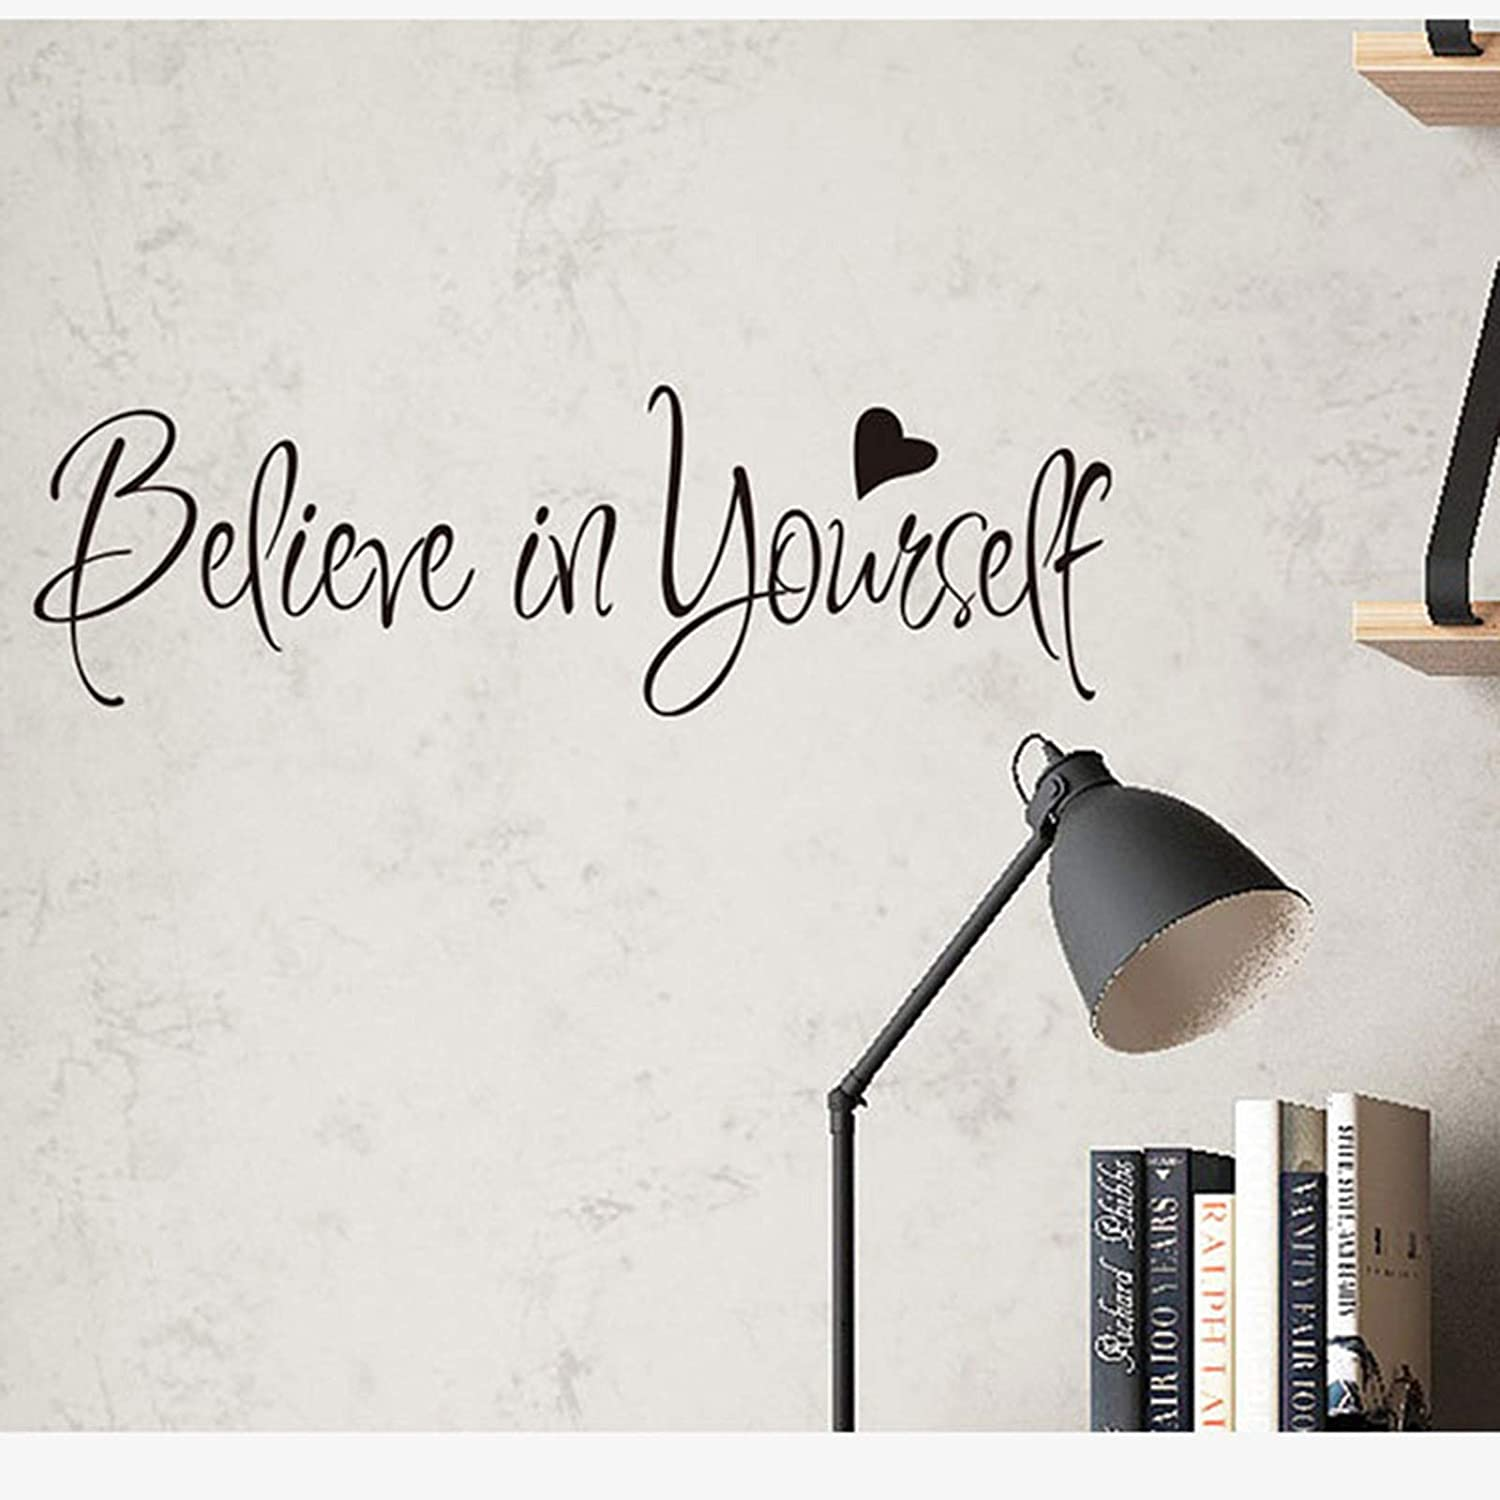 Believe in Yourself Wall Decals Stickers Positive Wall Sayings Motivational Wall Quotes Peel and Stick Words Letters Decor for Bedroom, Classroom